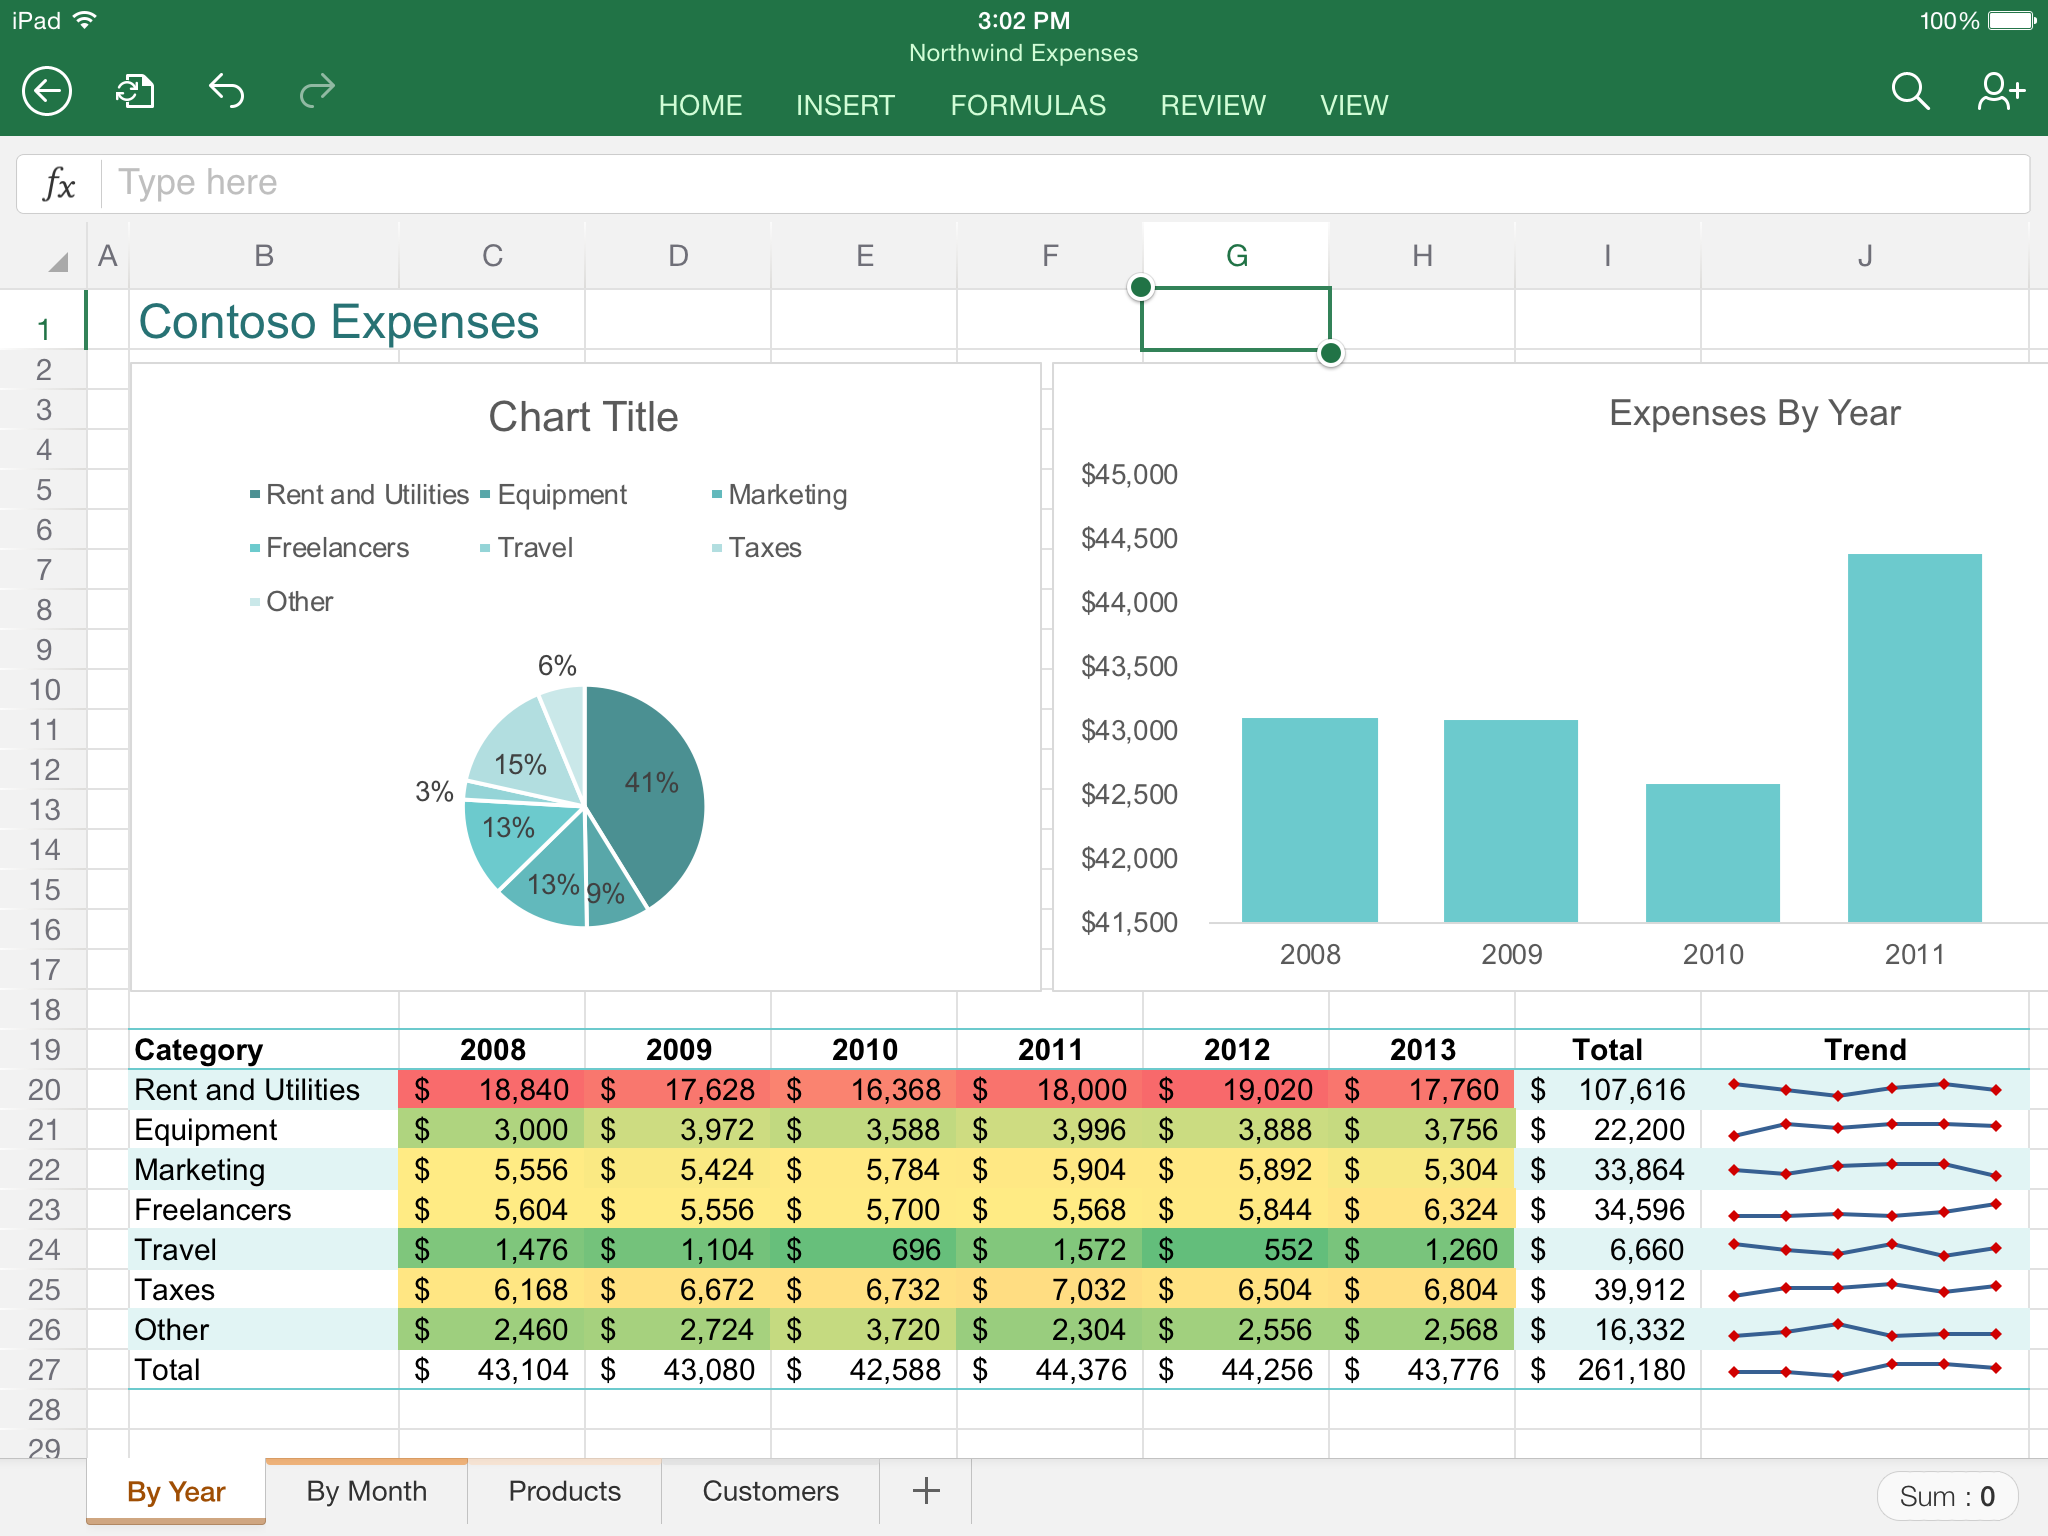 Ediblewildsus  Personable App Highlight Excel  Mobile Digital Now With Magnificent Excel In Action With Attractive Excel Vba Create Pivot Table Also Match Values In Excel In Addition Example Excel Spreadsheet And Microsoft Excel Project Management Template As Well As Comma Separated Values Excel Additionally Date In Excel Formula From Youstonybrookedu With Ediblewildsus  Magnificent App Highlight Excel  Mobile Digital Now With Attractive Excel In Action And Personable Excel Vba Create Pivot Table Also Match Values In Excel In Addition Example Excel Spreadsheet From Youstonybrookedu